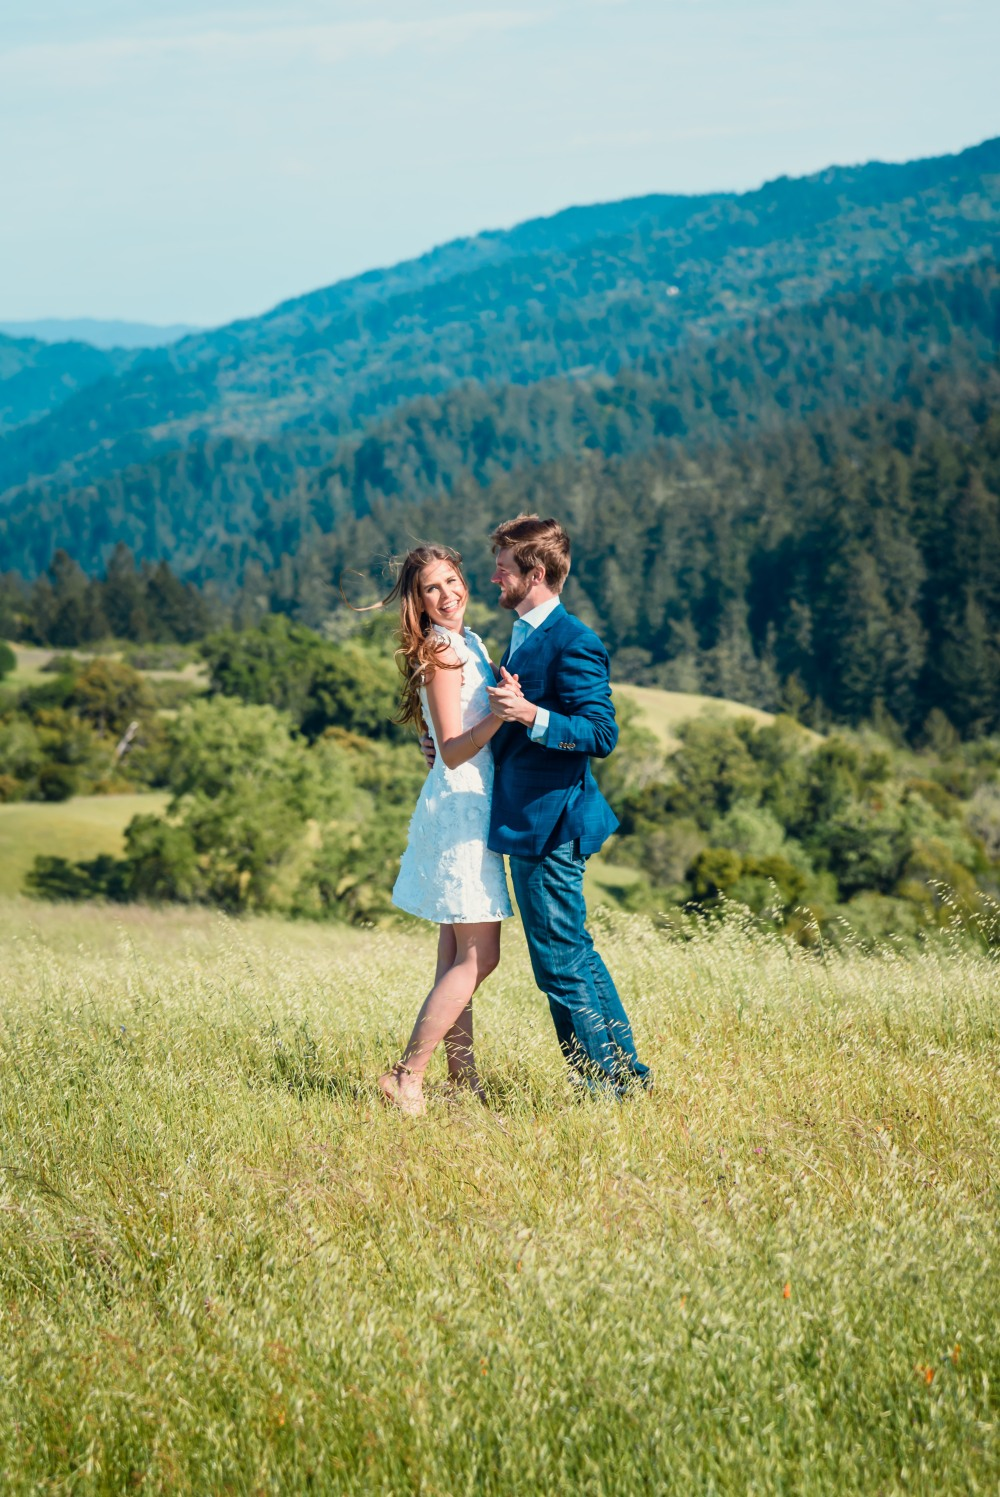 bay area photographer couples engagement photography mountains dance